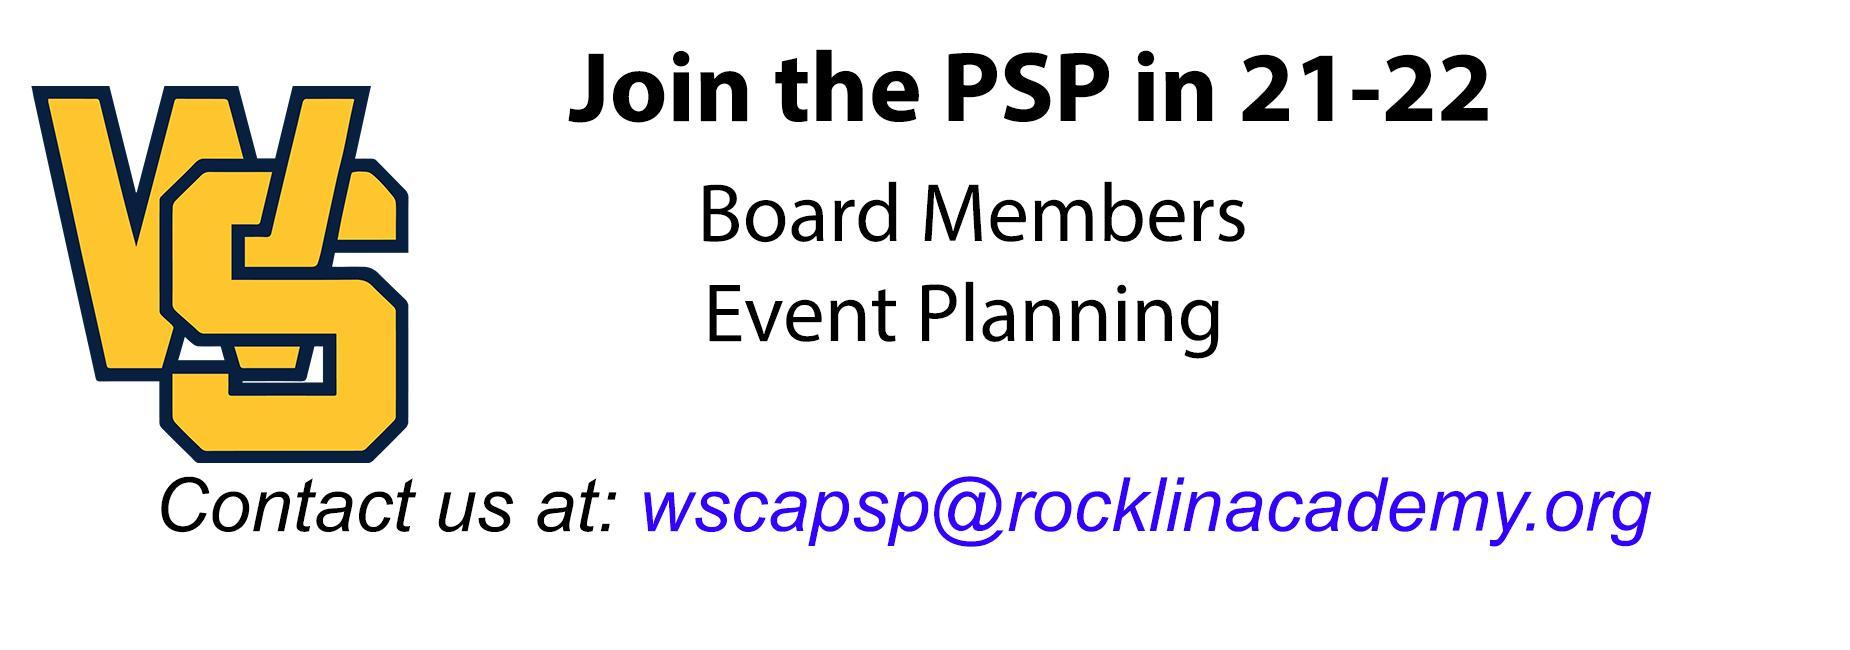 Join the PSP in 21-22